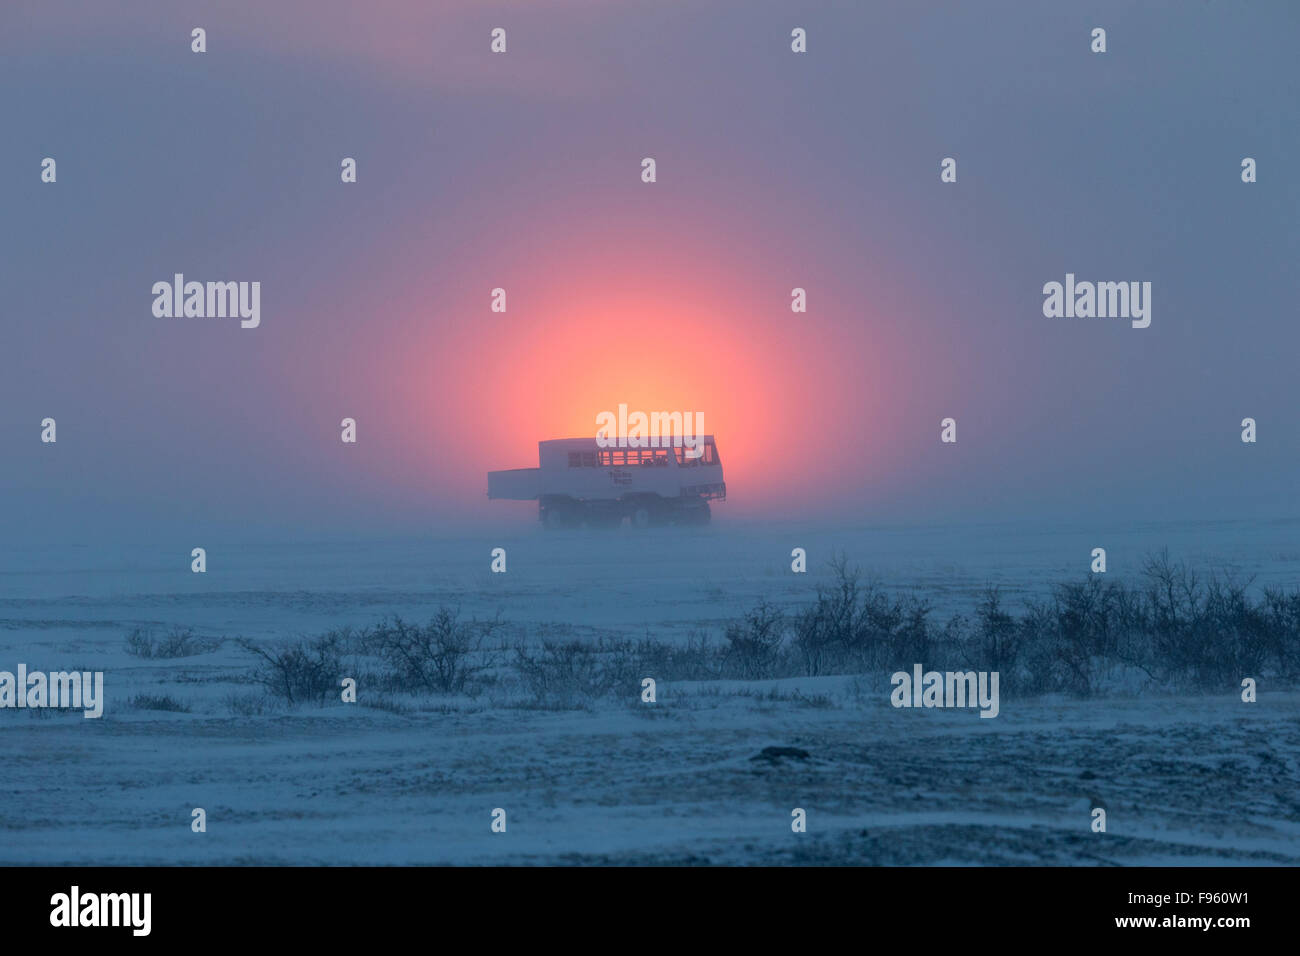 Tundra buggy with passengers looking for polar bears at sunset, Cape Churchill, Wapusk National Park, Manitoba. - Stock Image